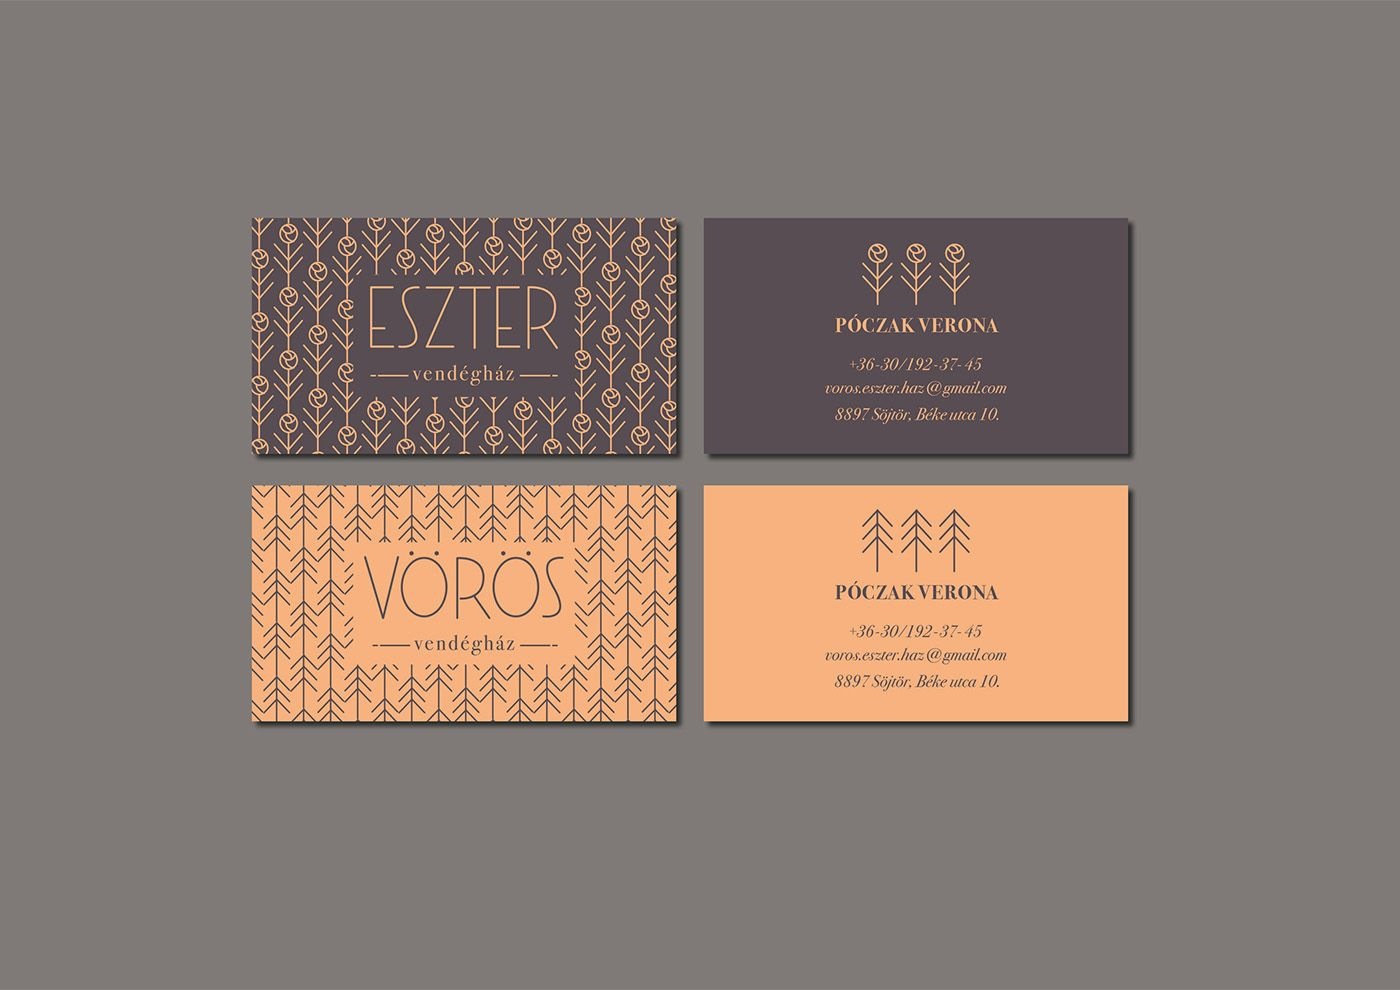 This is an identity design for a village guesthouse, which contains ...